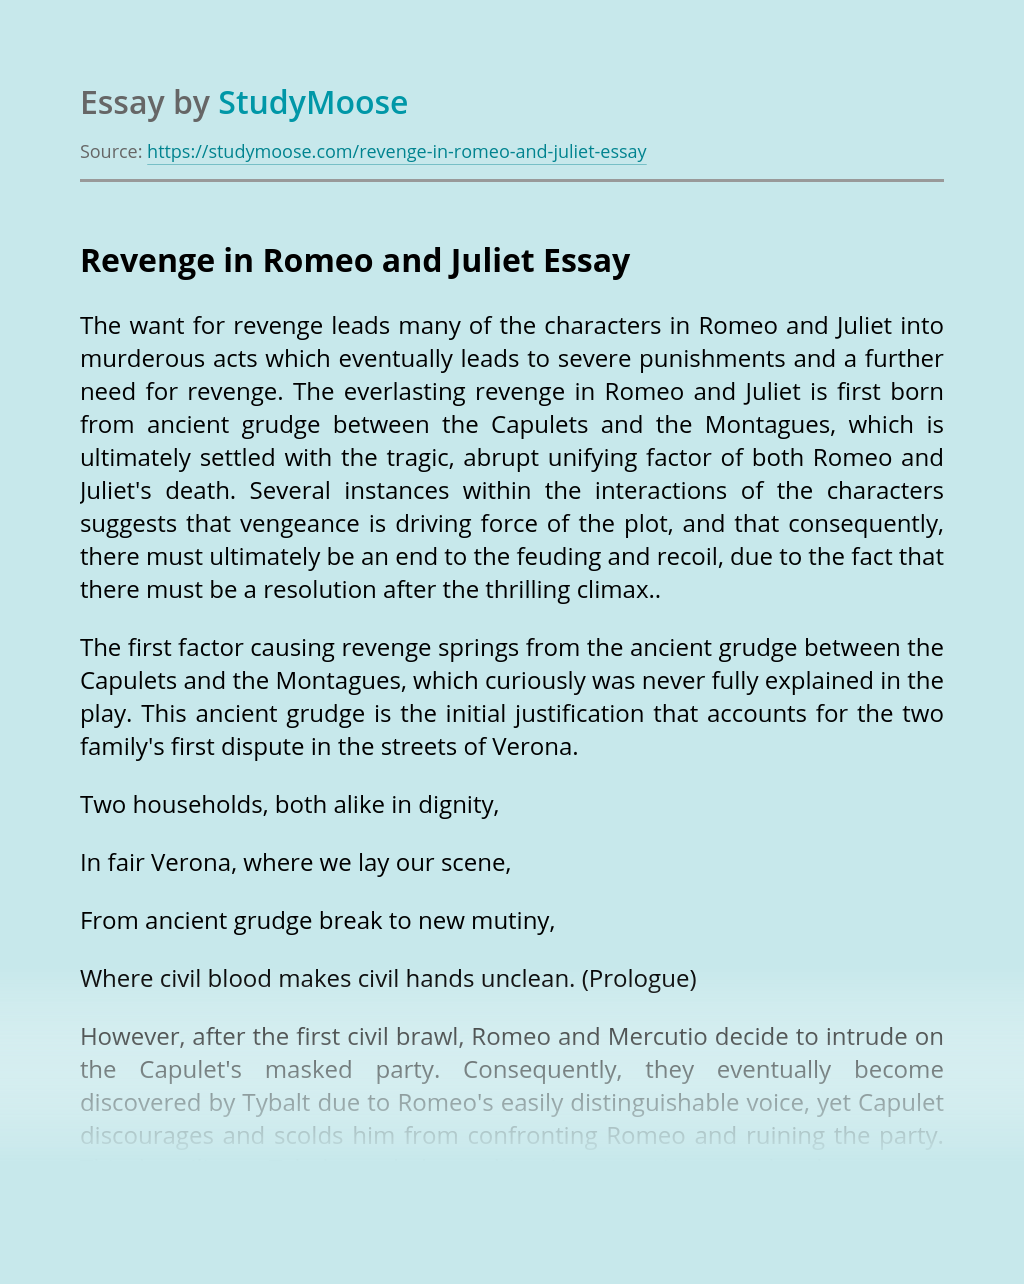 Revenge in Romeo and Juliet